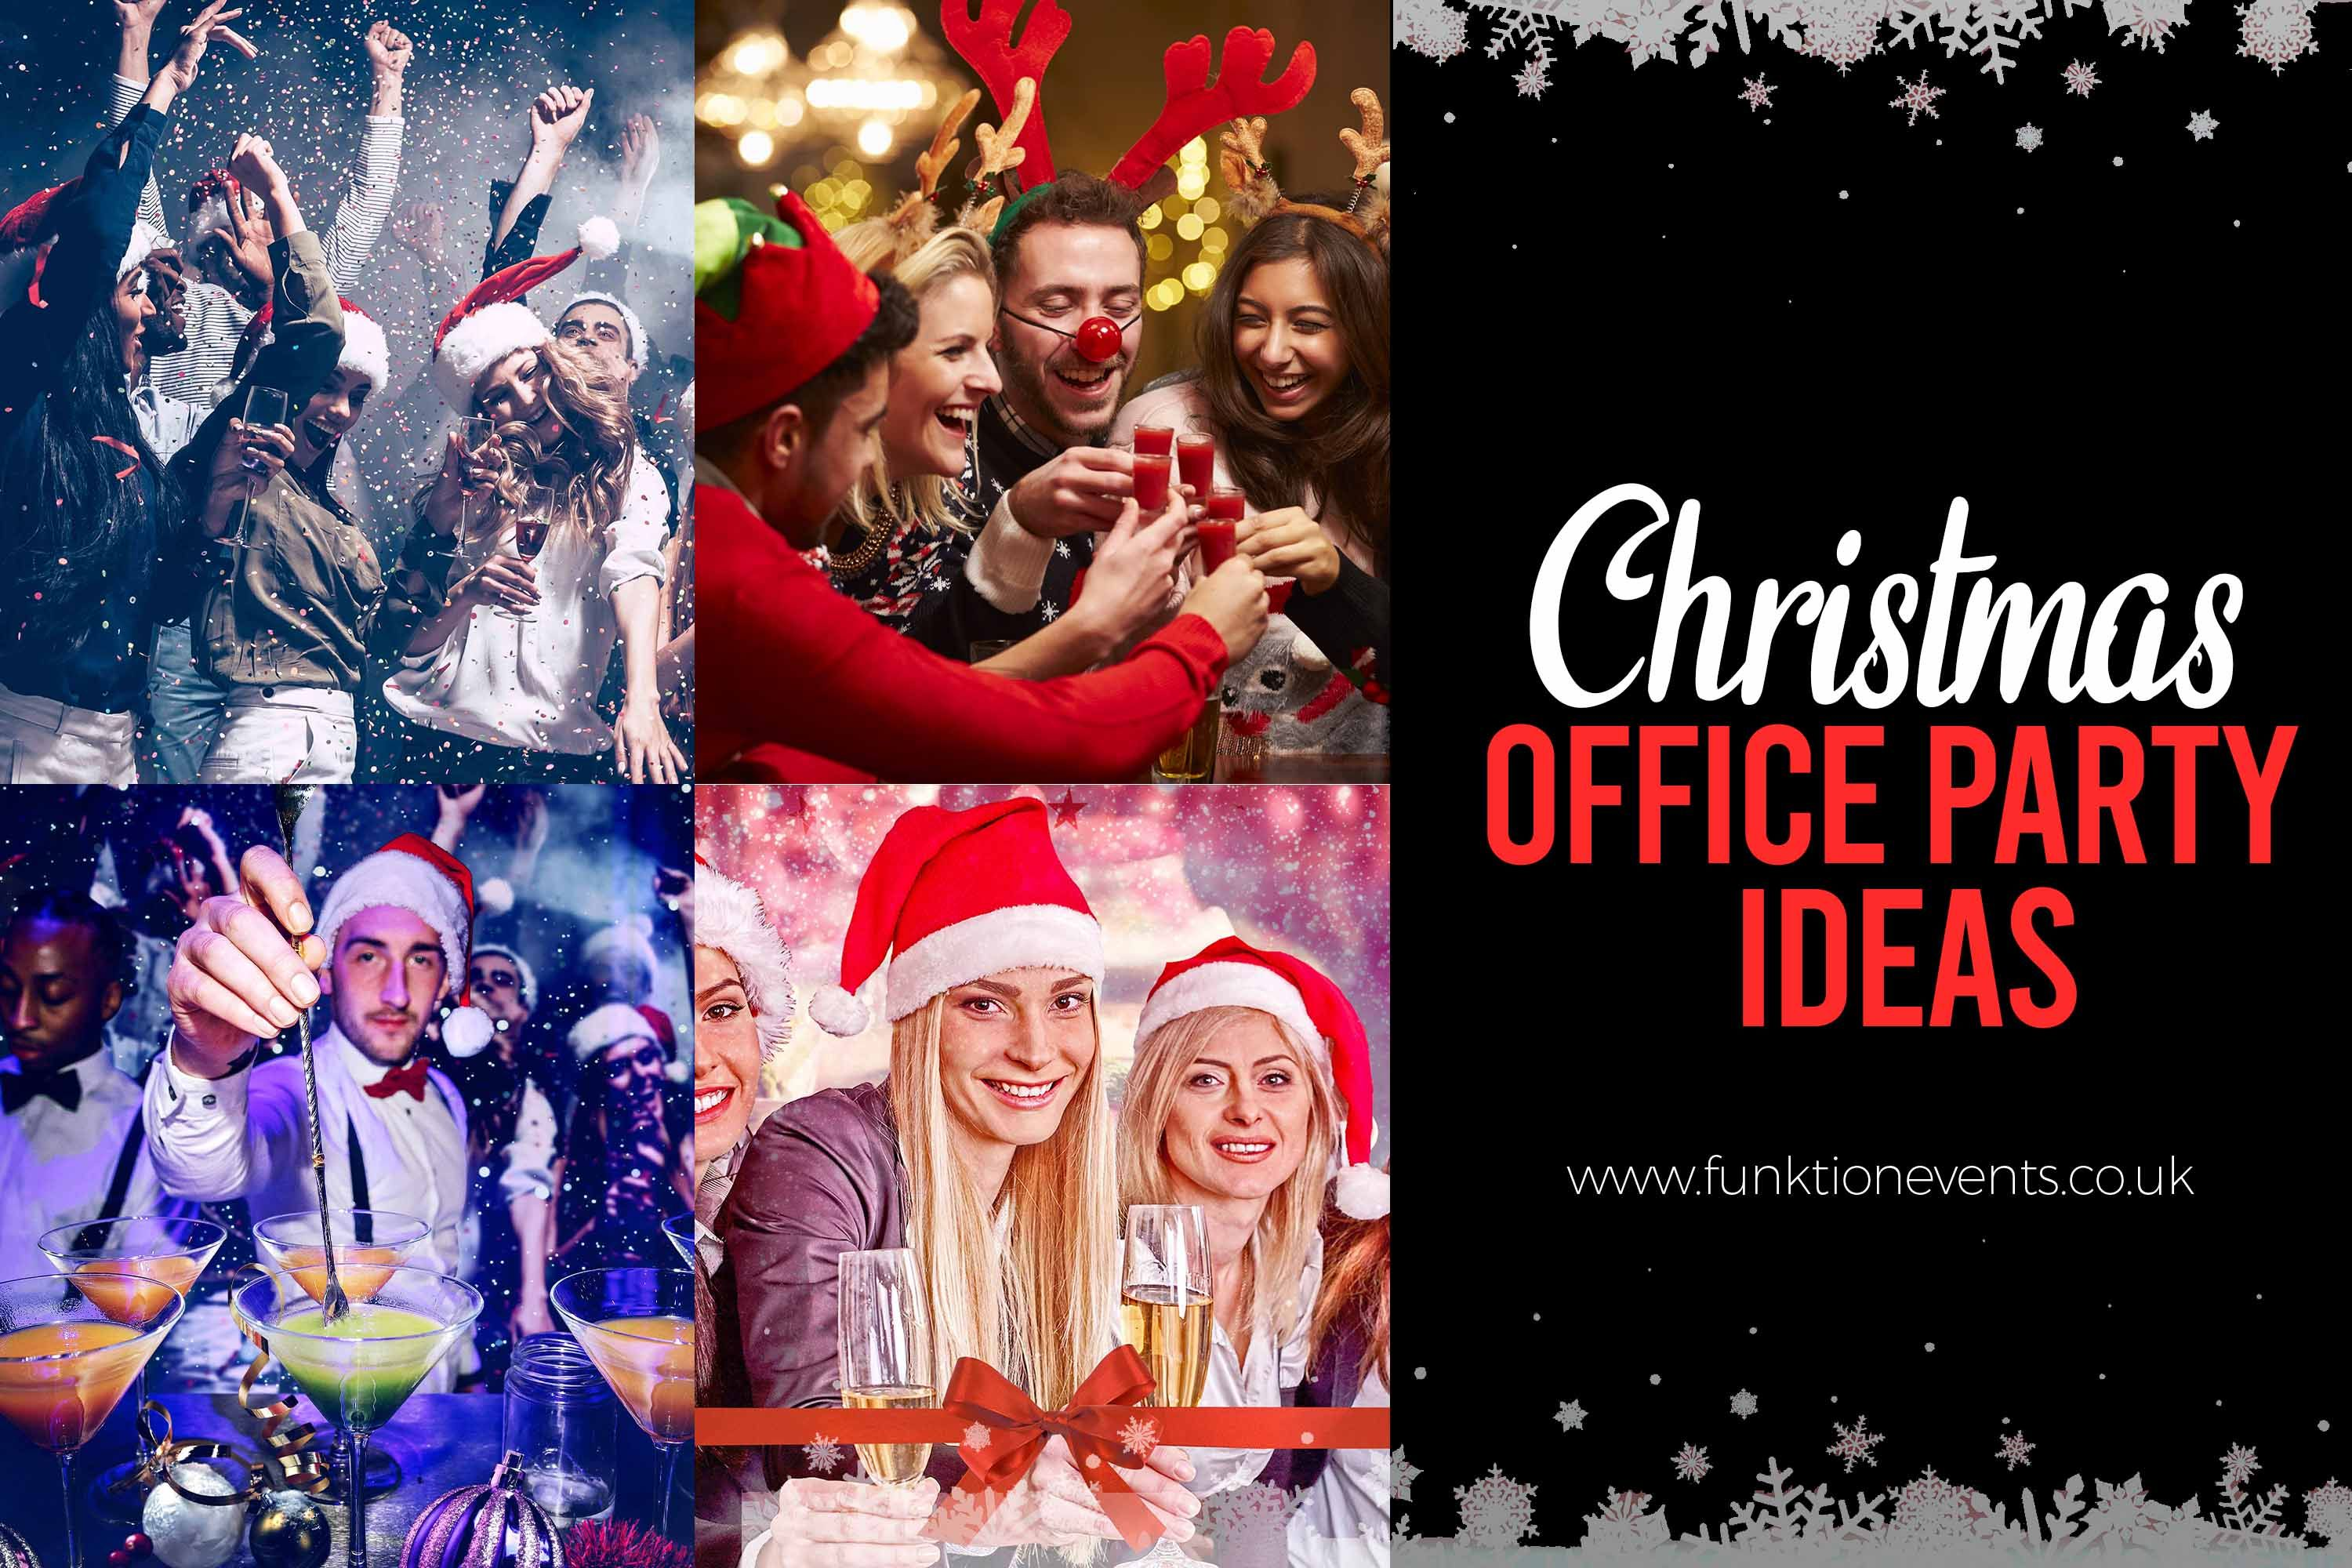 Christmas Office Party Ideas Work Christmas Party Games Work Christmas Party Ideas Work Christmas Party Work Christmas Party Games